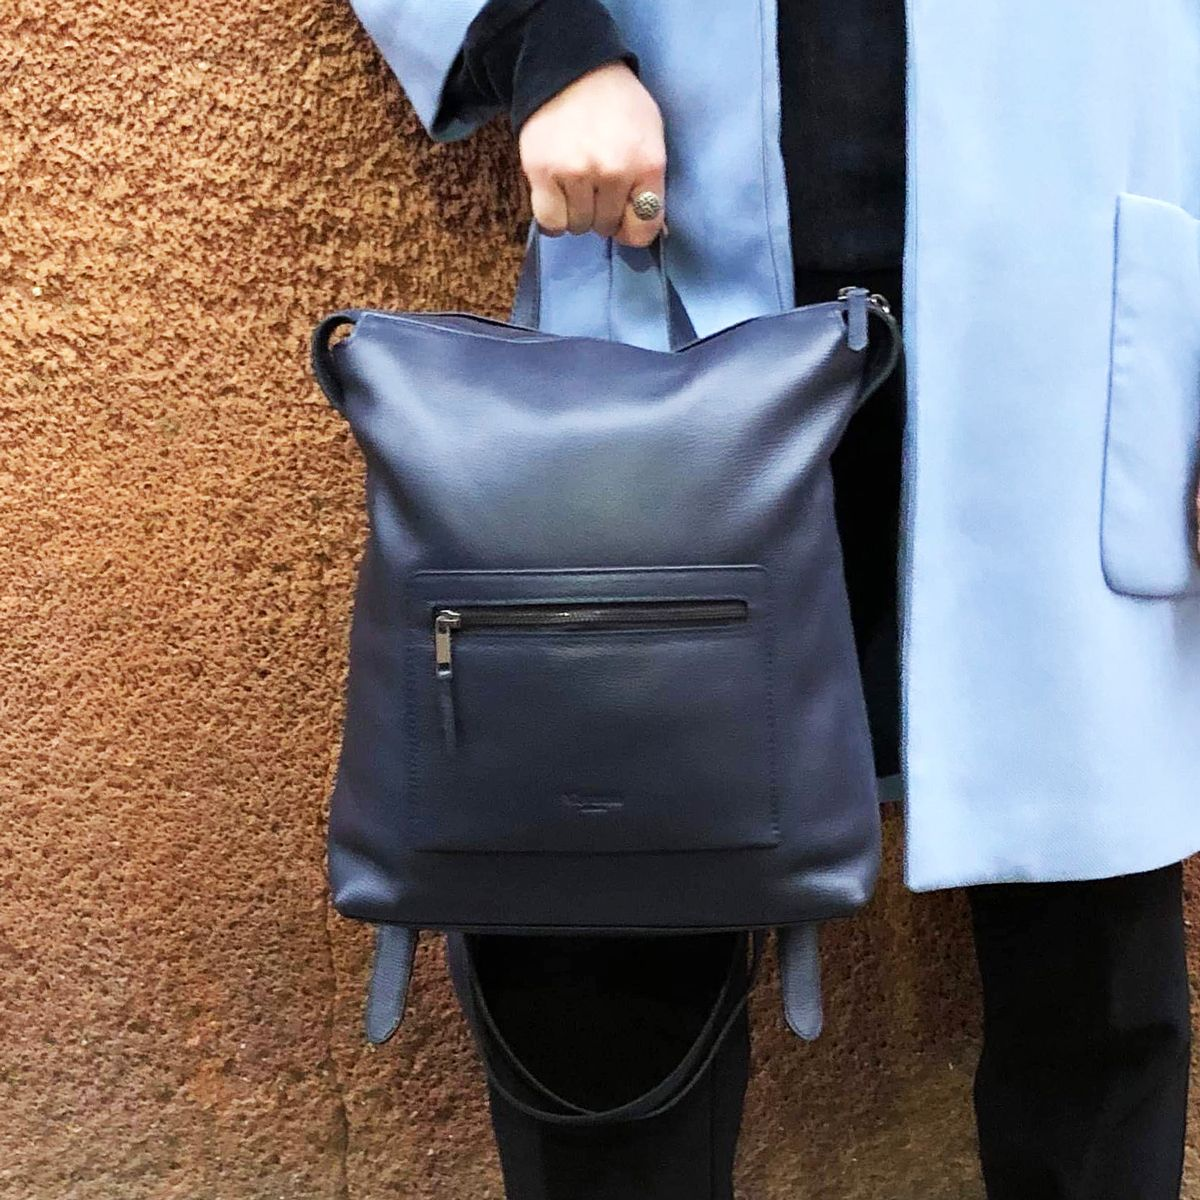 The MILLWALL Backpack in Navy #leather #handbags #fashion #london #genuineleather #womensfashion #purse #vivano #style #clutch #wallet #bag #accessories #genuineleather #london #womenstyle #grey #smallleathergoods #womensfashion #grabbag #vivanolondon #workbag #Millwallpic.twitter.com/9ztK3NJEhU